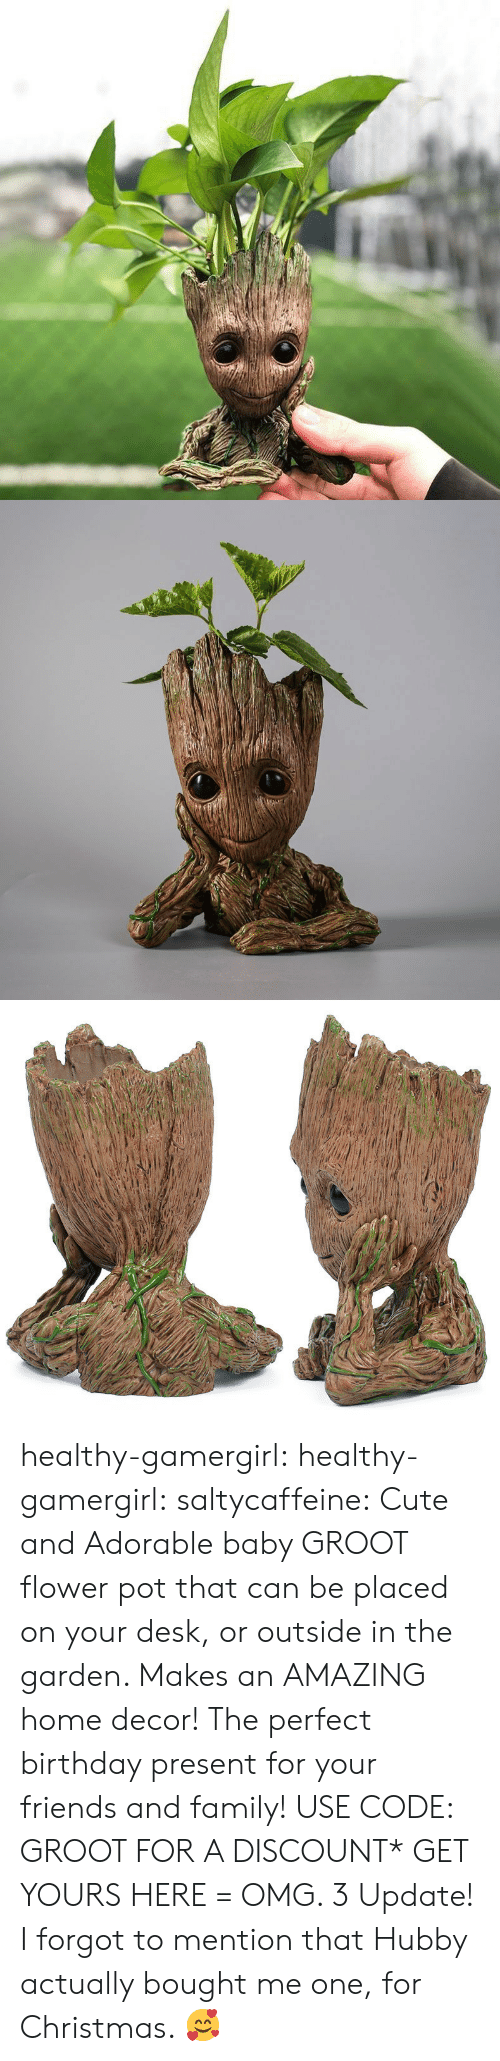 Birthday, Christmas, and Cute: healthy-gamergirl:  healthy-gamergirl:  saltycaffeine: Cute and Adorable baby GROOT flower pot that can be placed on your desk, or outside in the garden. Makes an AMAZING home decor! The perfect birthday present for your friends and family! USE CODE: GROOT FOR A DISCOUNT* GET YOURS HERE =  OMG. 3  Update! I forgot to mention that Hubby actually bought me one, for Christmas. 🥰